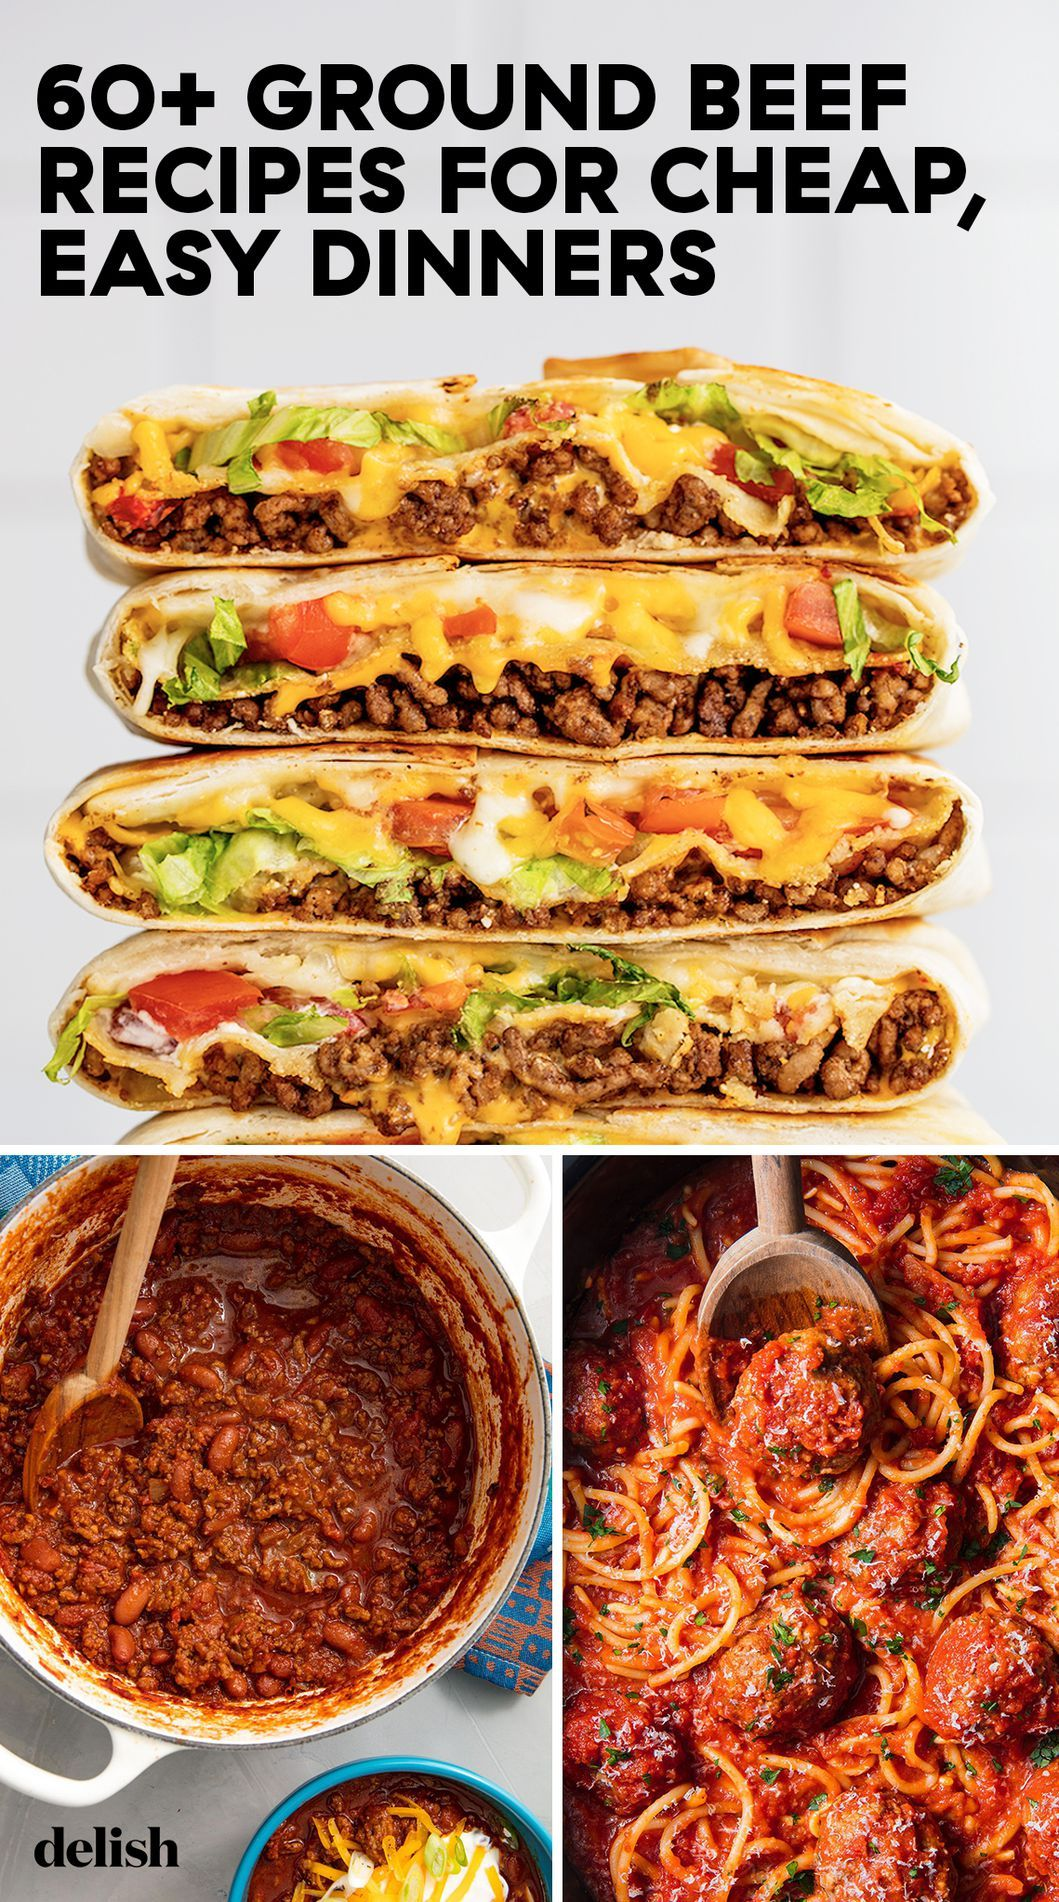 These Budget Friendly Ground Beef Recipes Are Easy To Make And So Delicious Beef Recipes Easy Beef Recipes For Dinner Ground Beef Recipes Easy